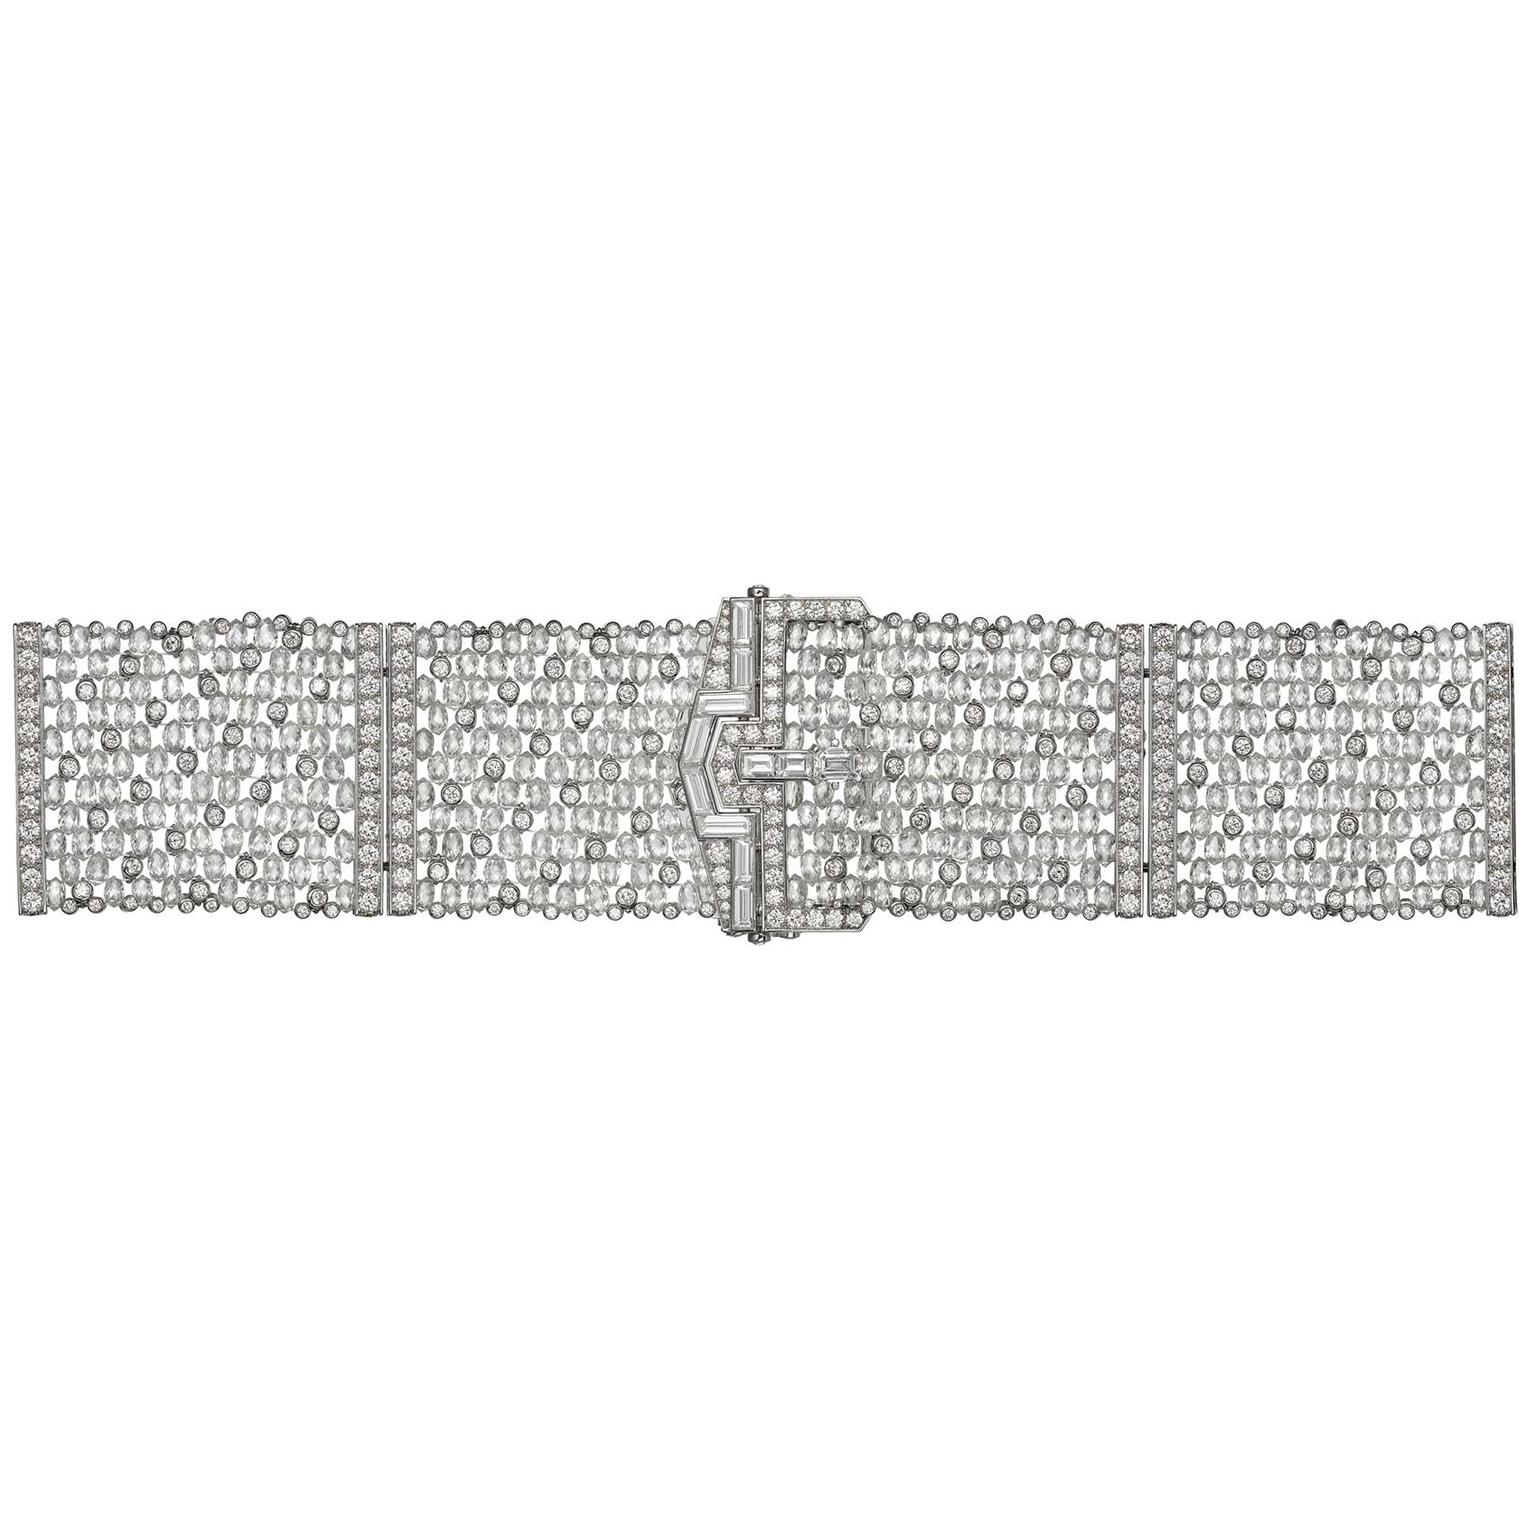 Cartier Étourdissant Diamas high jewellery diamond bracelet